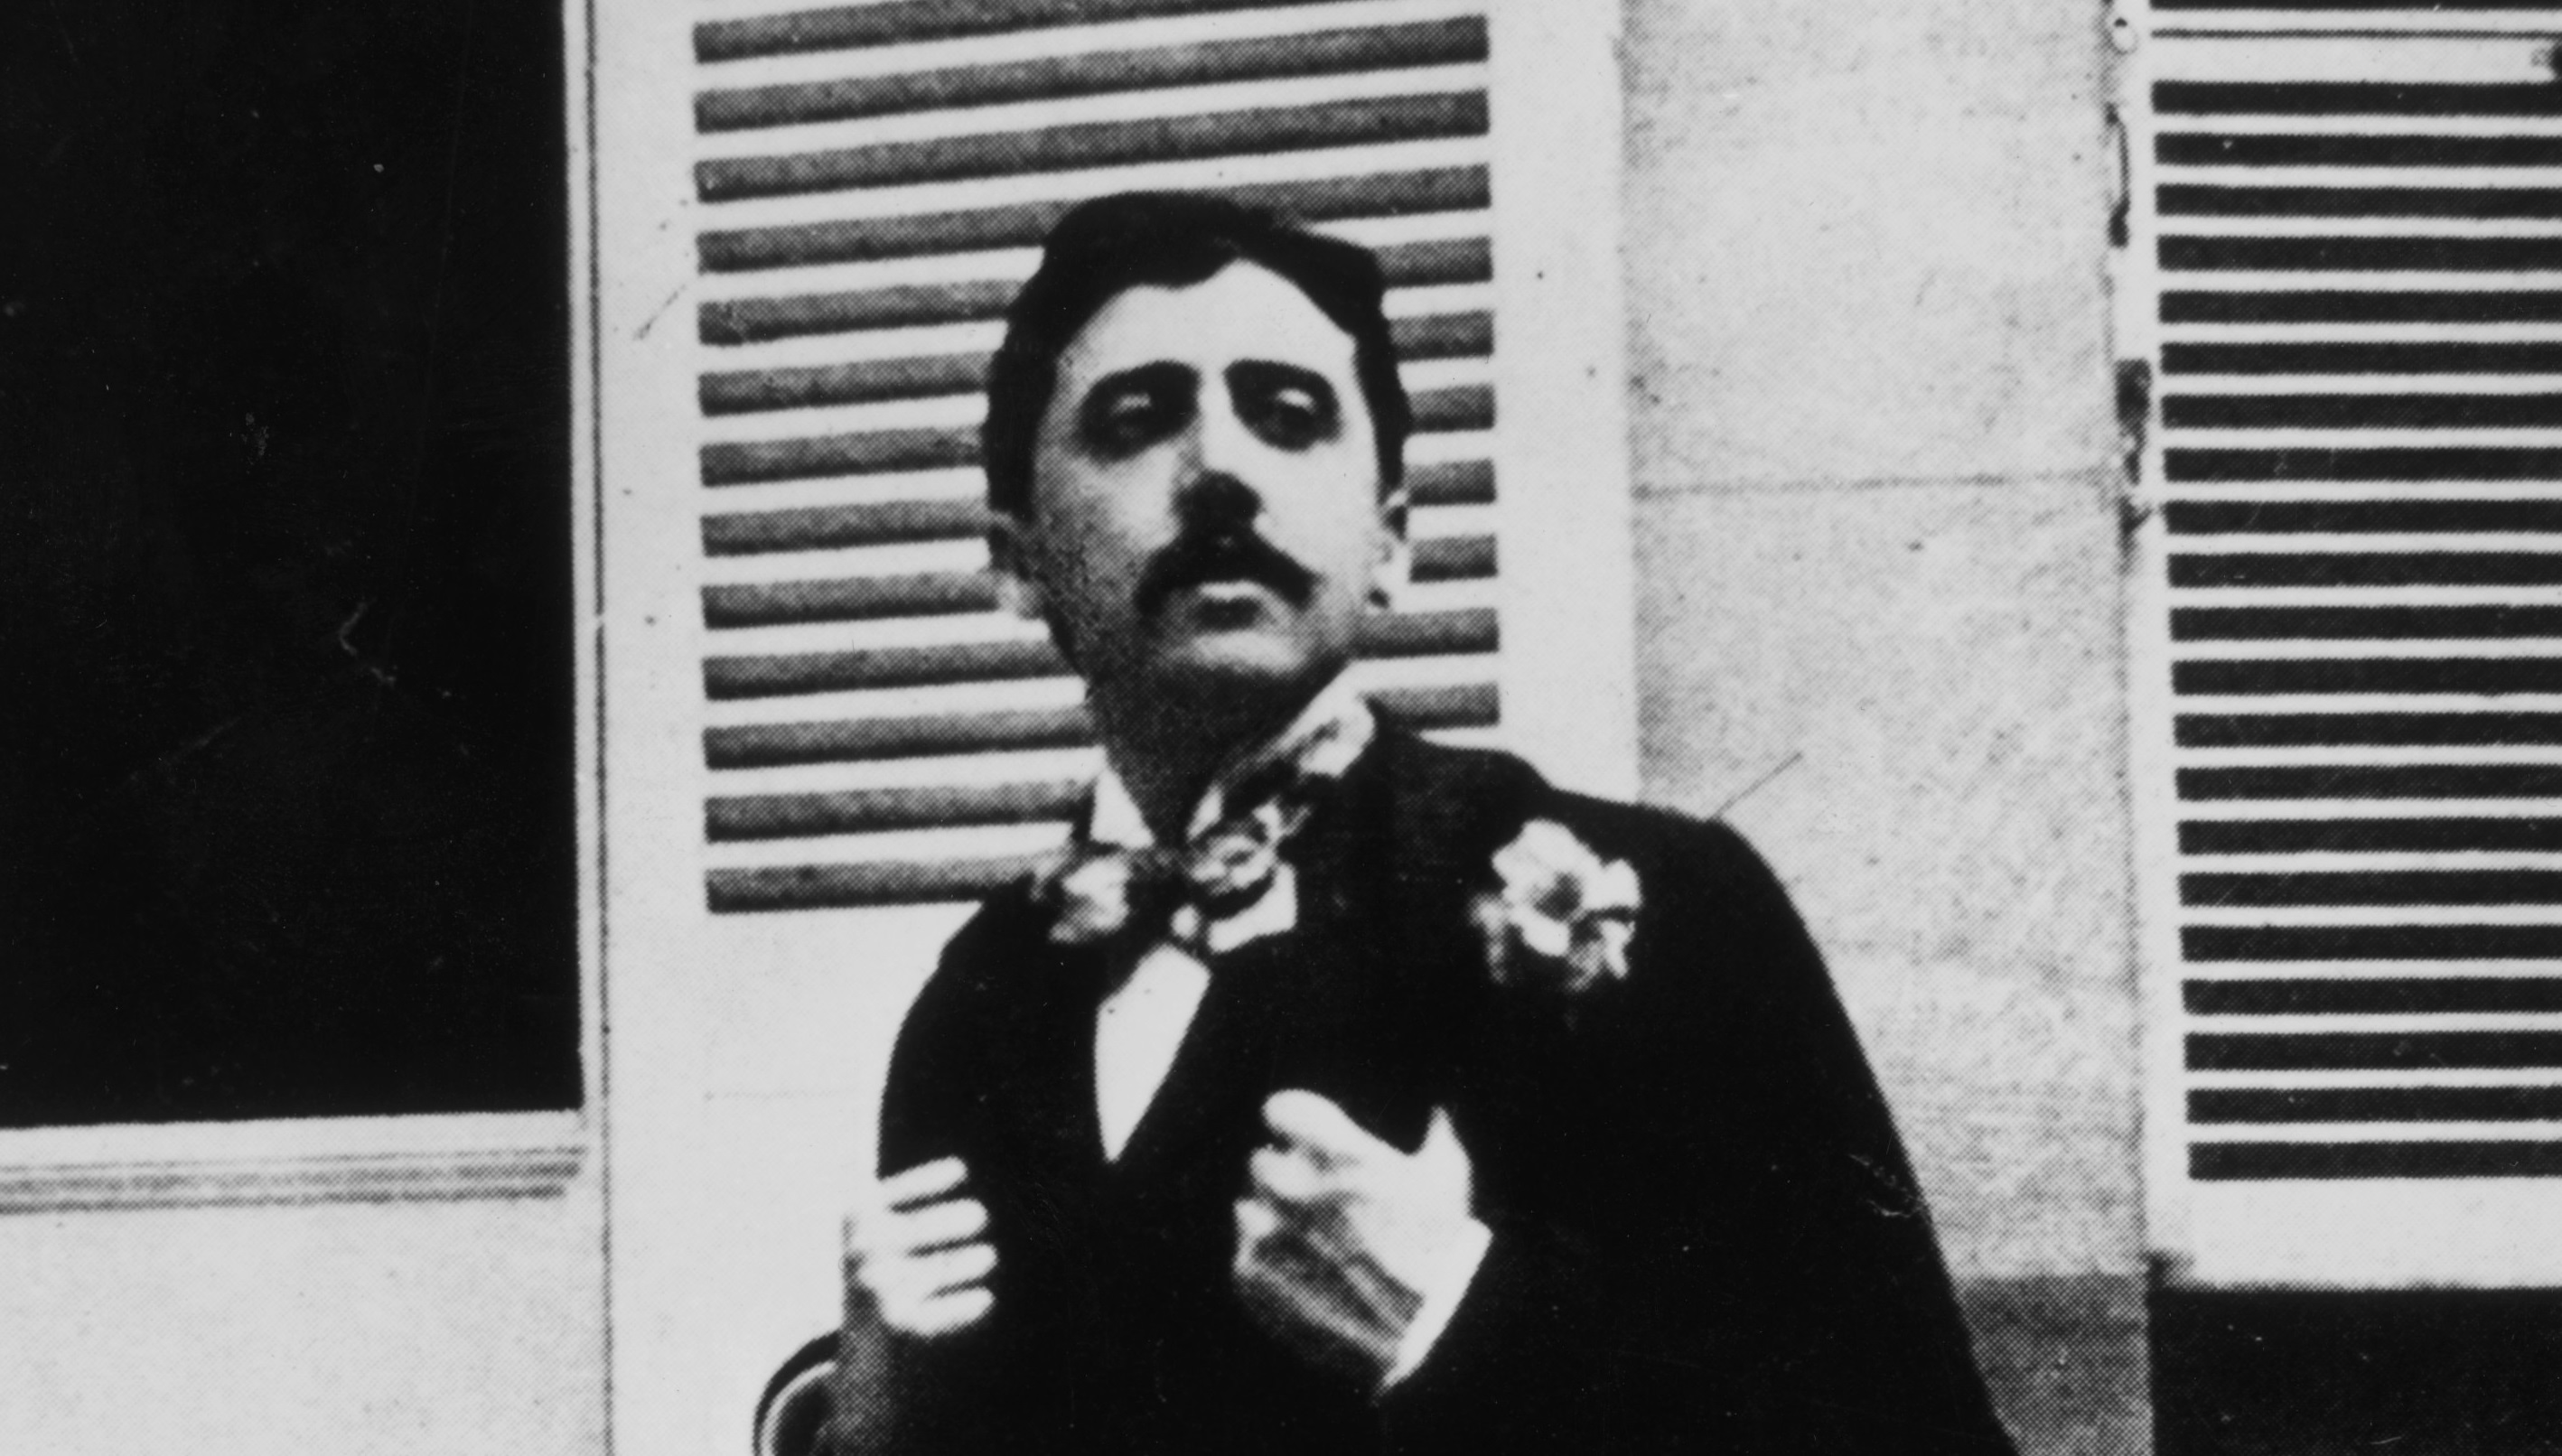 Marcel Proust's secret gay stories will finally be published